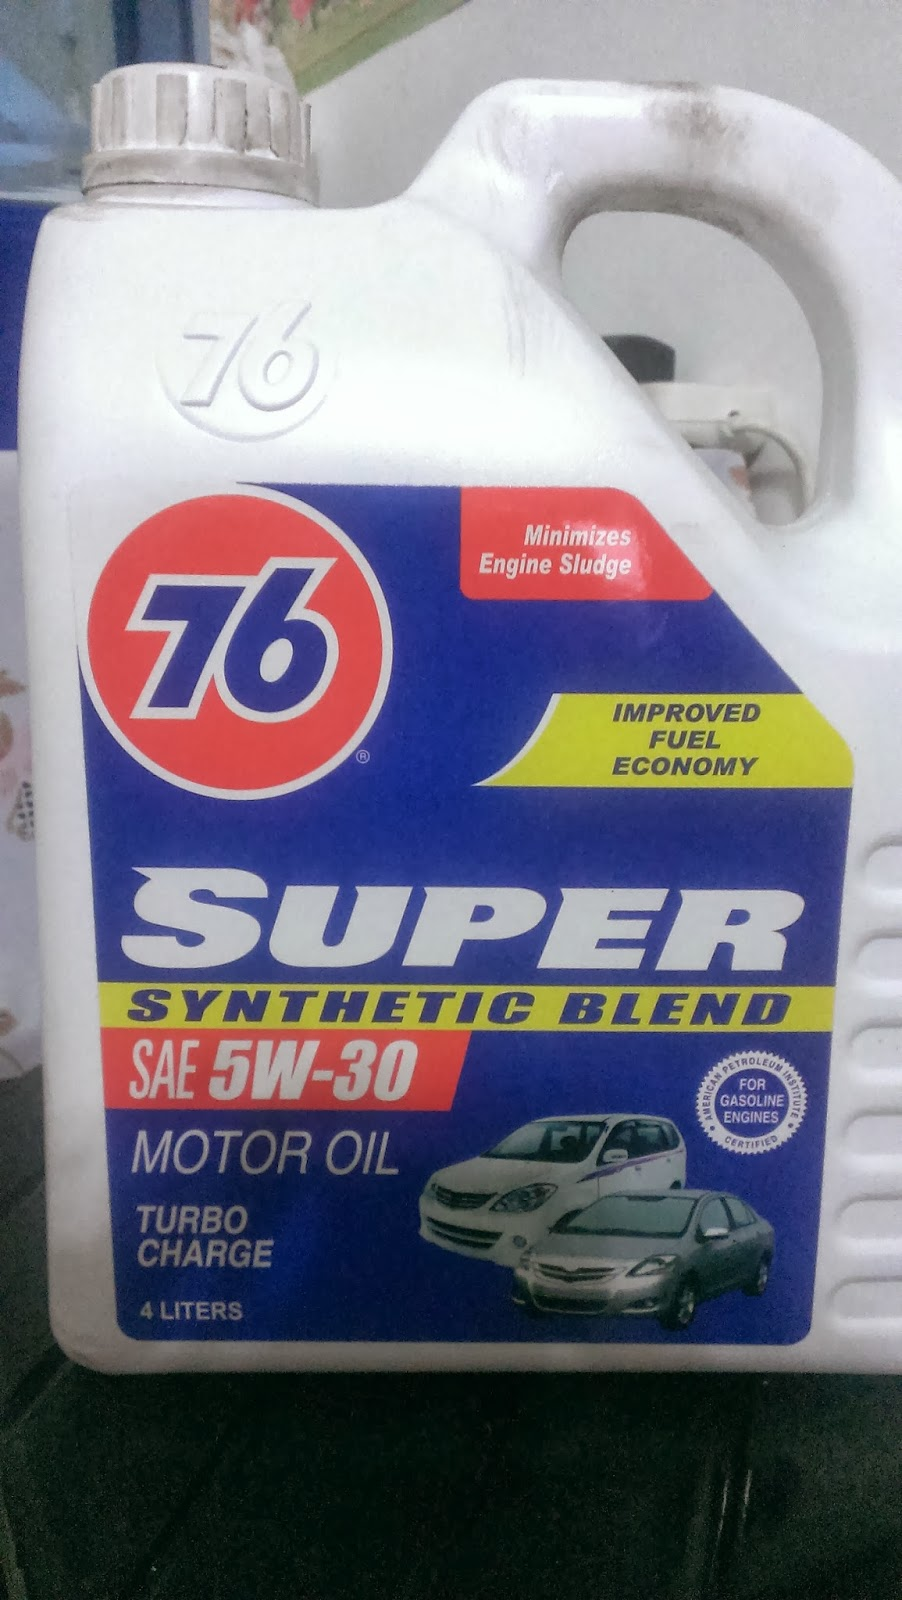 Synthetic Blend Motor Oil, Synthetic Blend Motor Oil Suppliers and ...